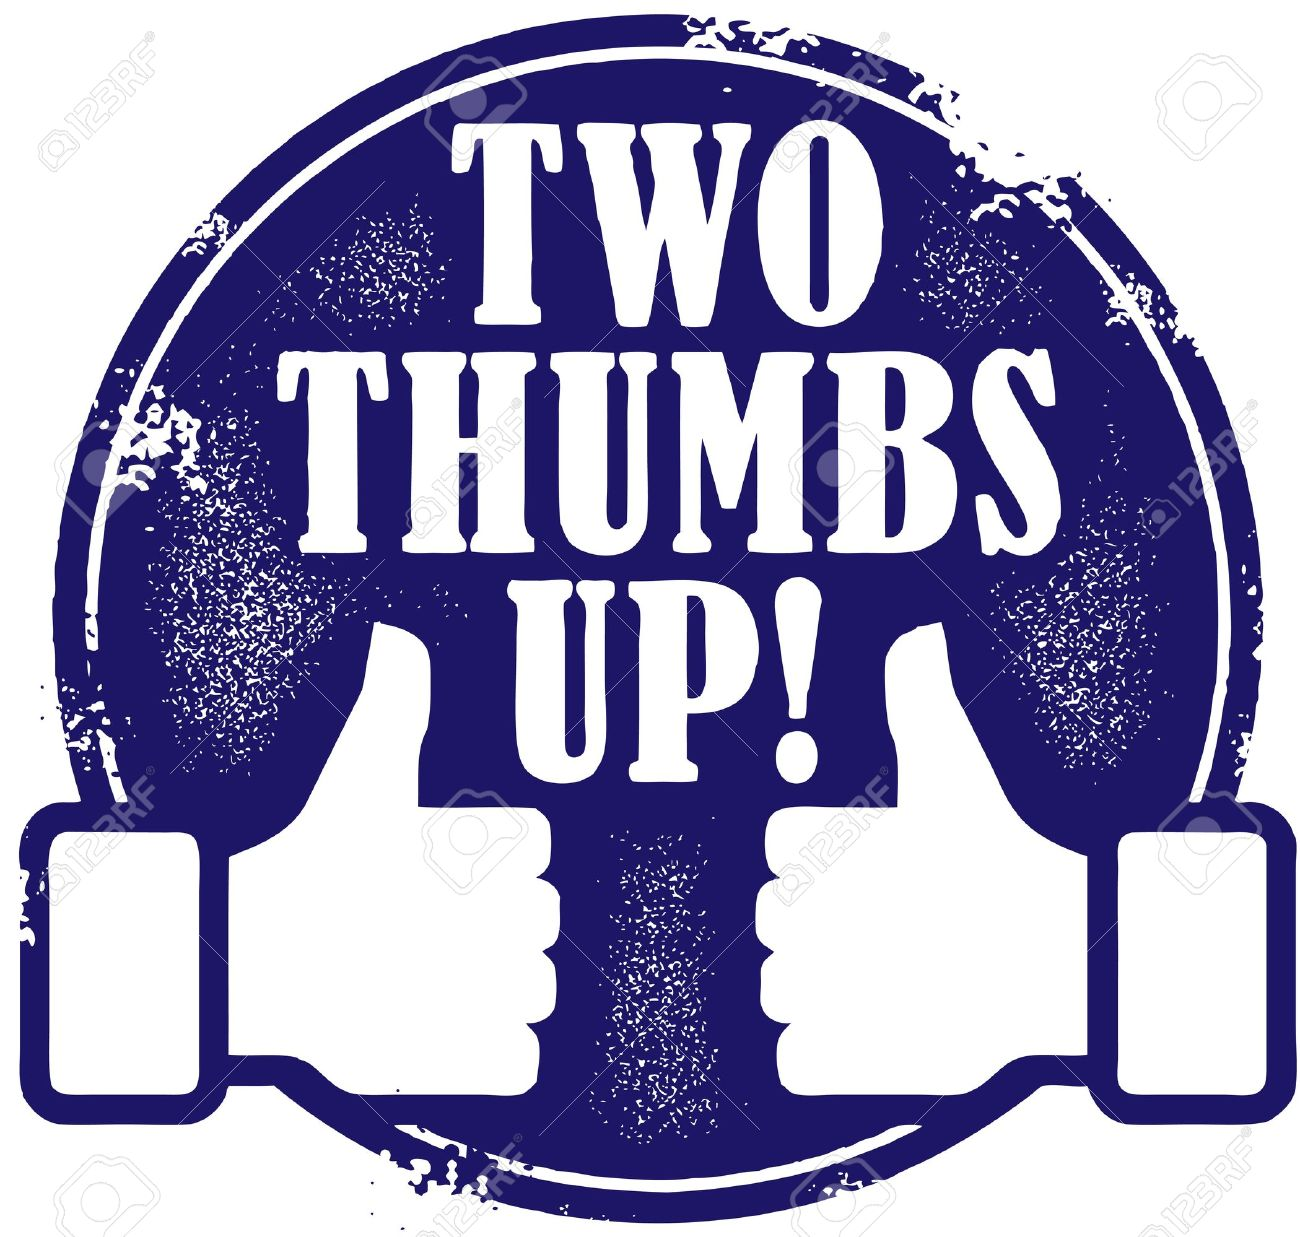 two thumps up stamp royalty free cliparts vectors and stock rh 123rf com Thumbs Down Clip Art Thumbs Down Clip Art